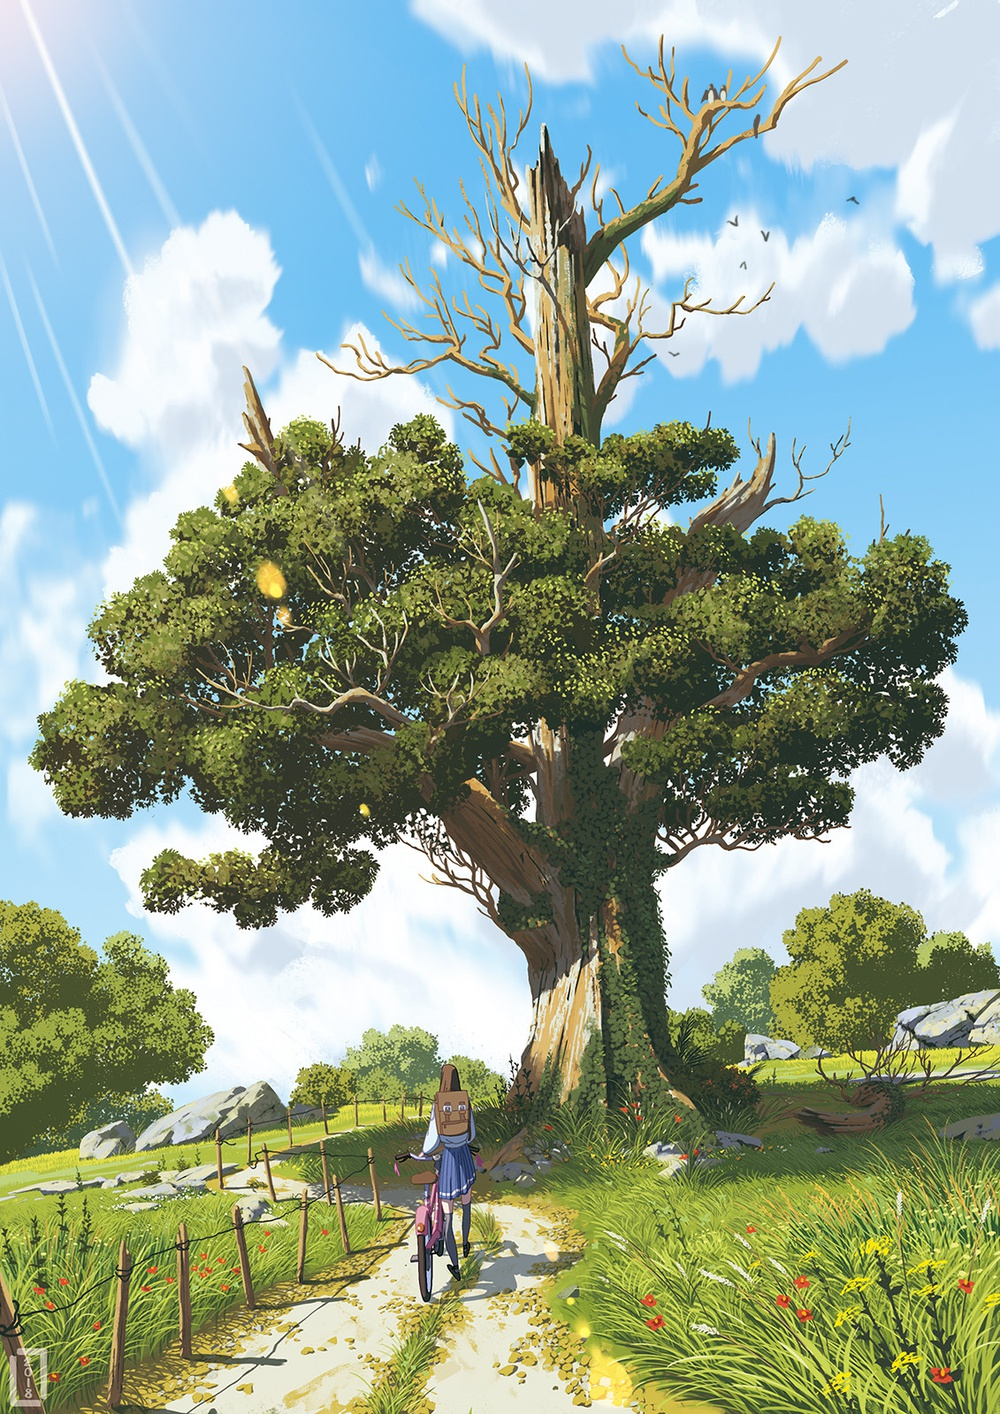 A solely tree in a lowland stands as a great man